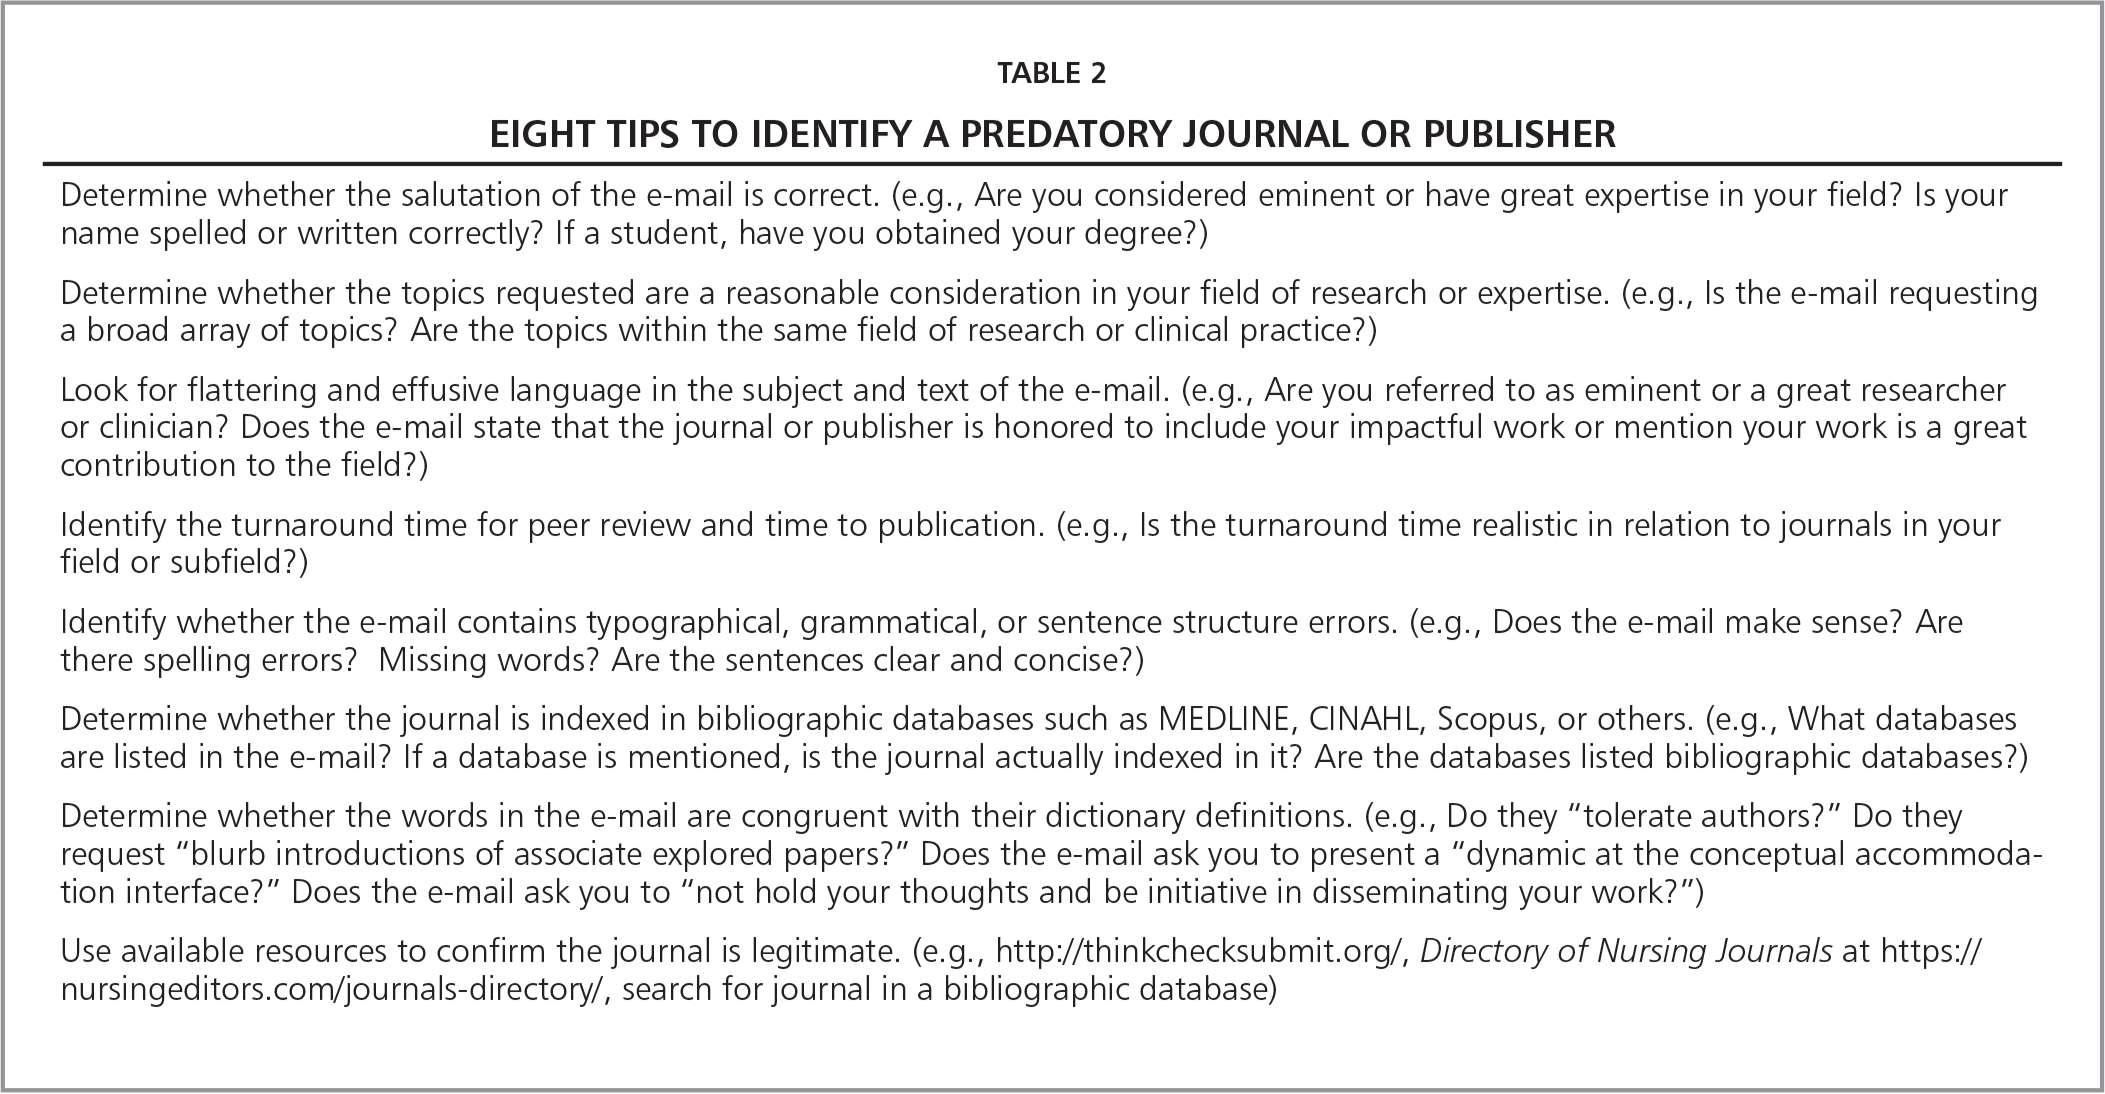 Eight Tips to Identify a Predatory Journal or Publisher